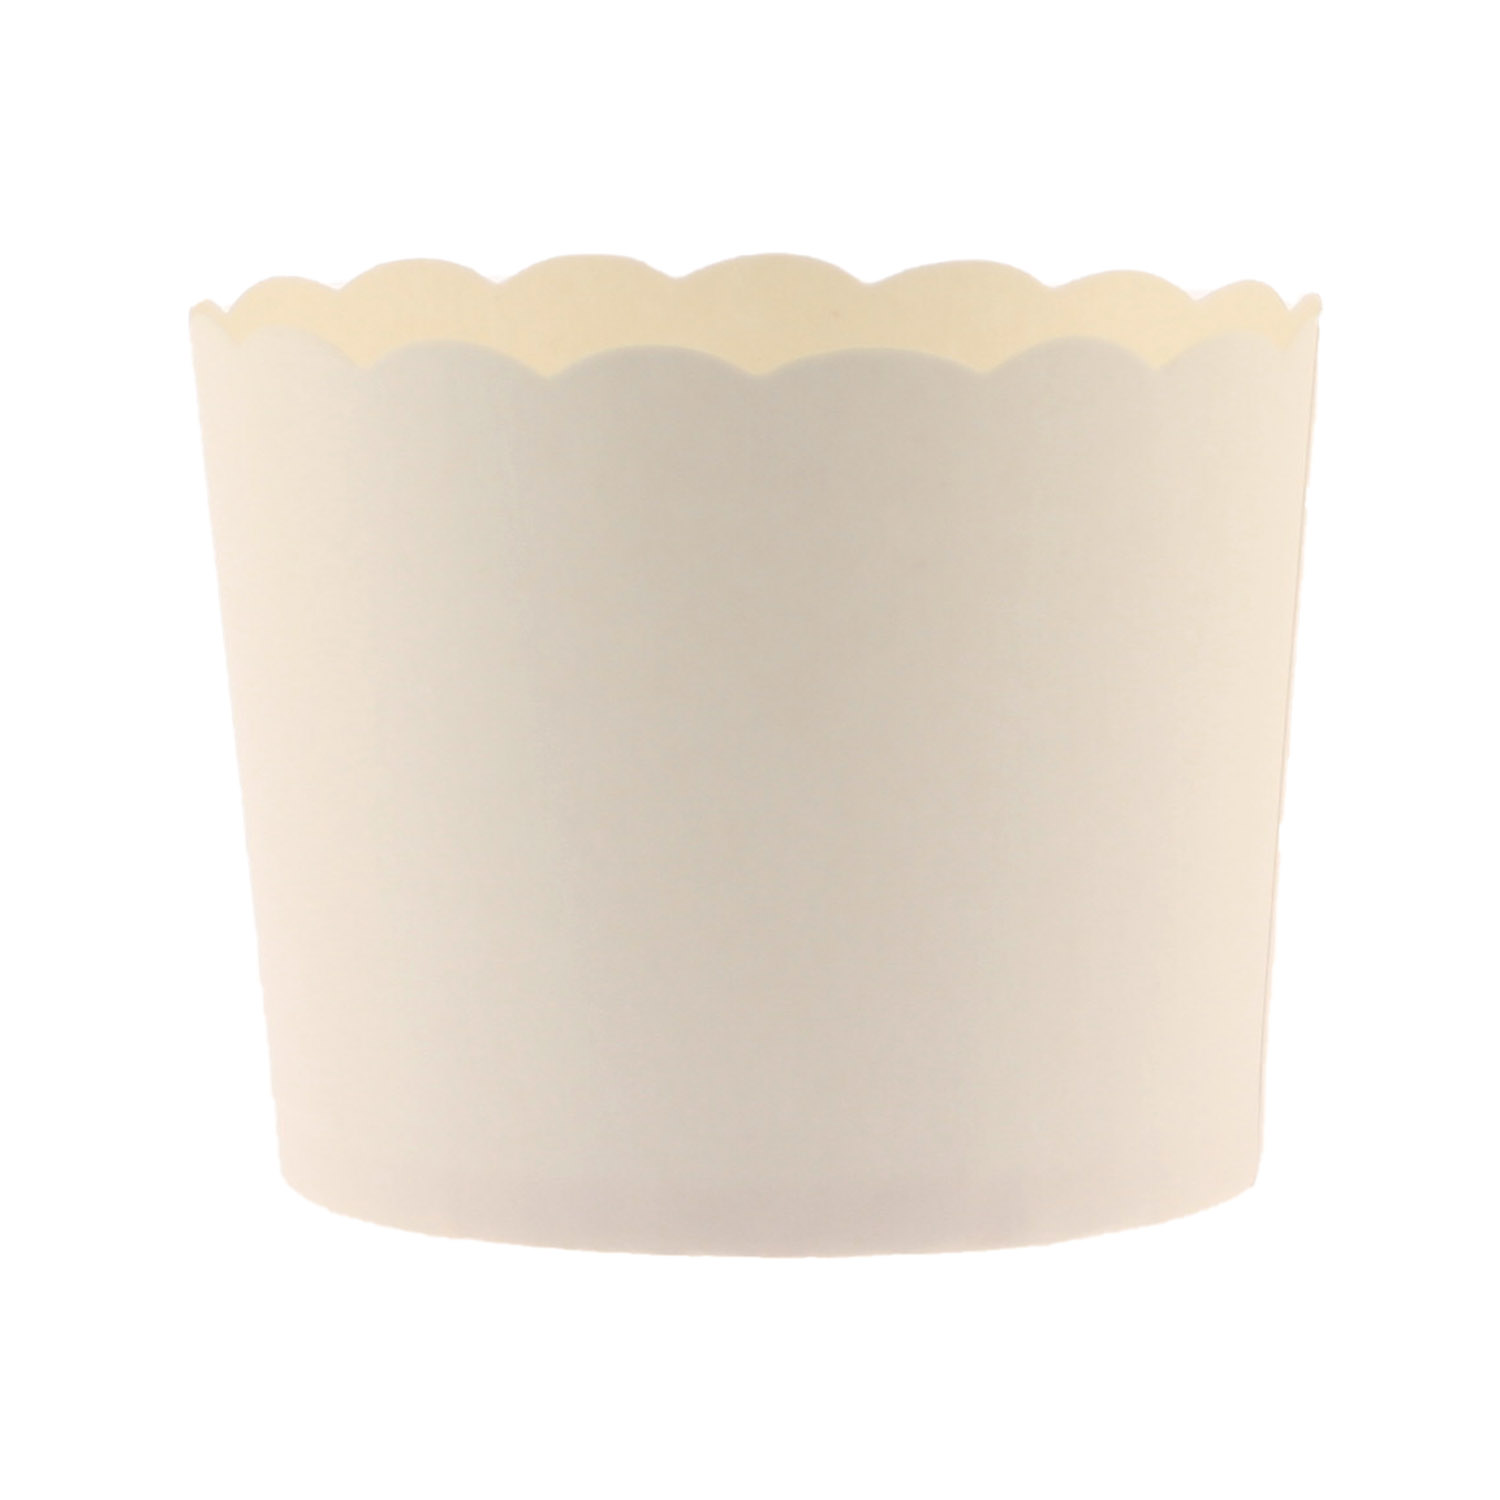 White Bake In Cups - Lg